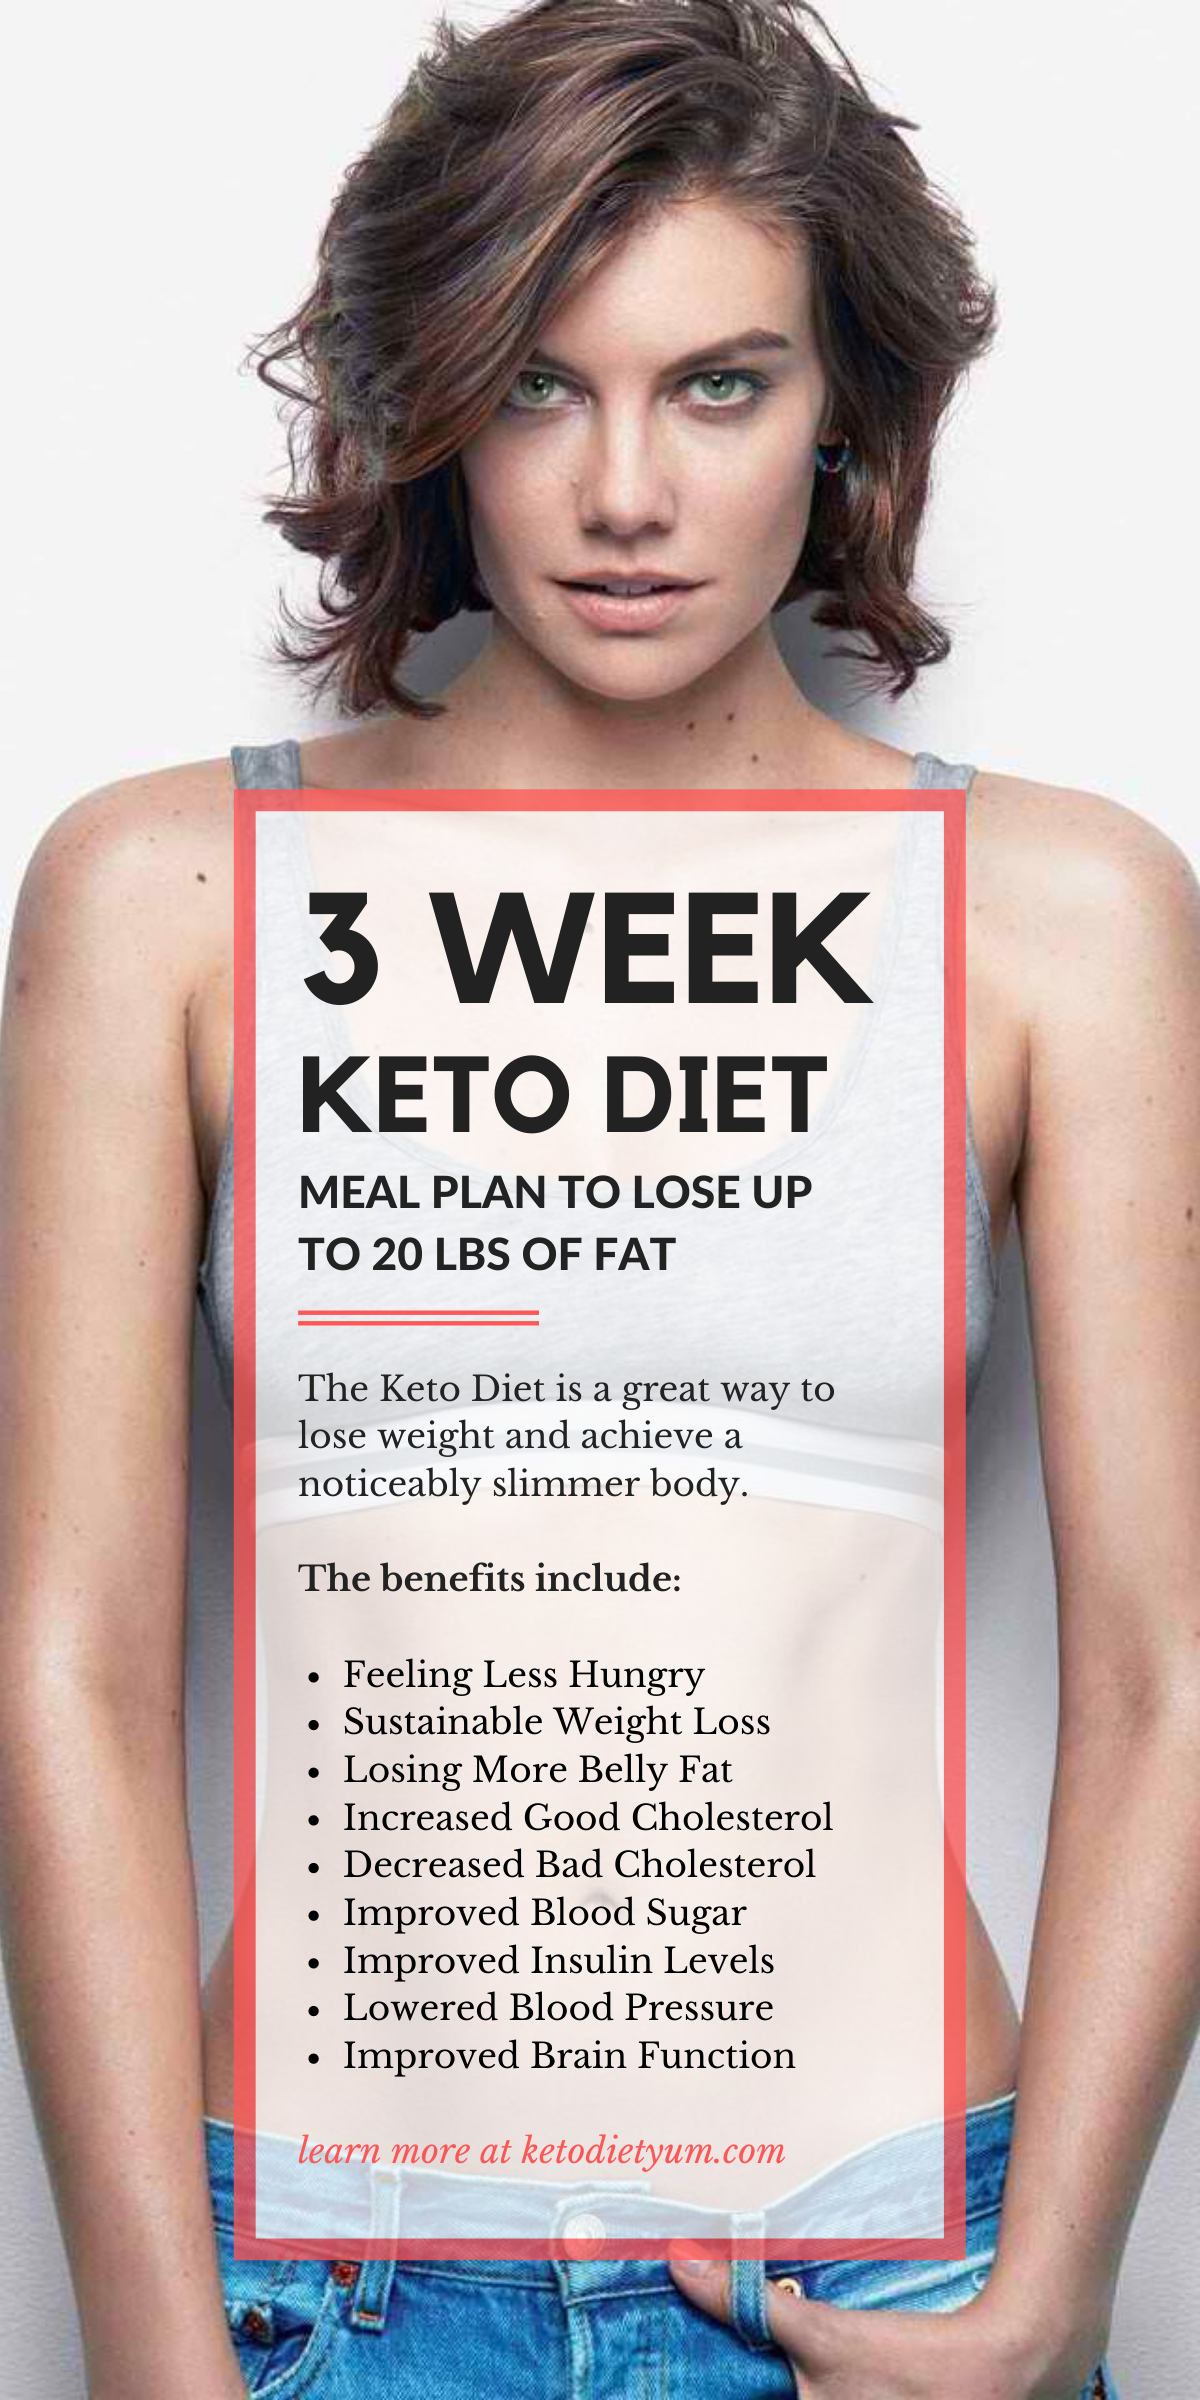 Ketosis is when your body starts producing and burning ketones for fuel instead of glucose carbohydrates Its a metabolic state and its great for weight loss